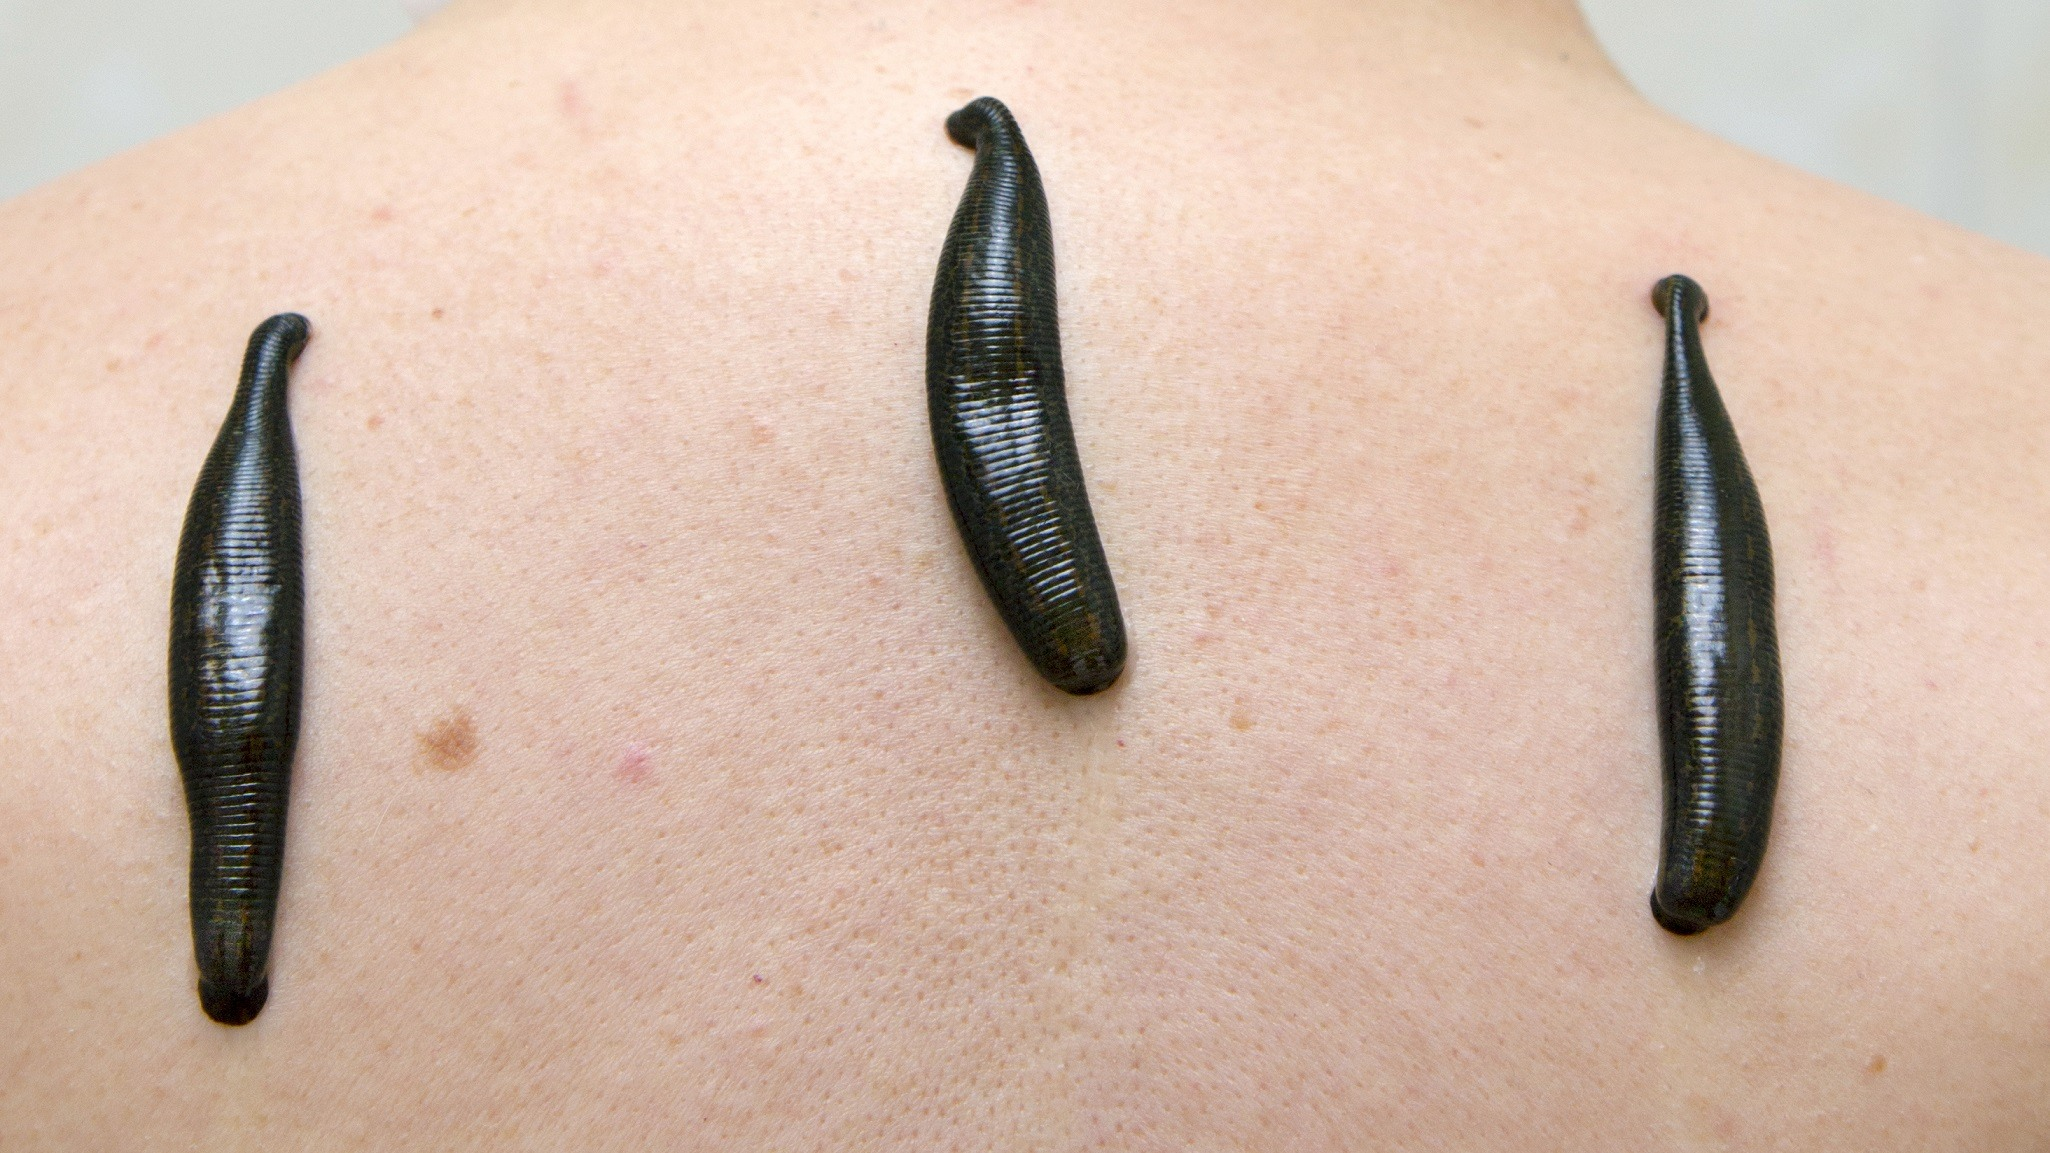 Leech therapy